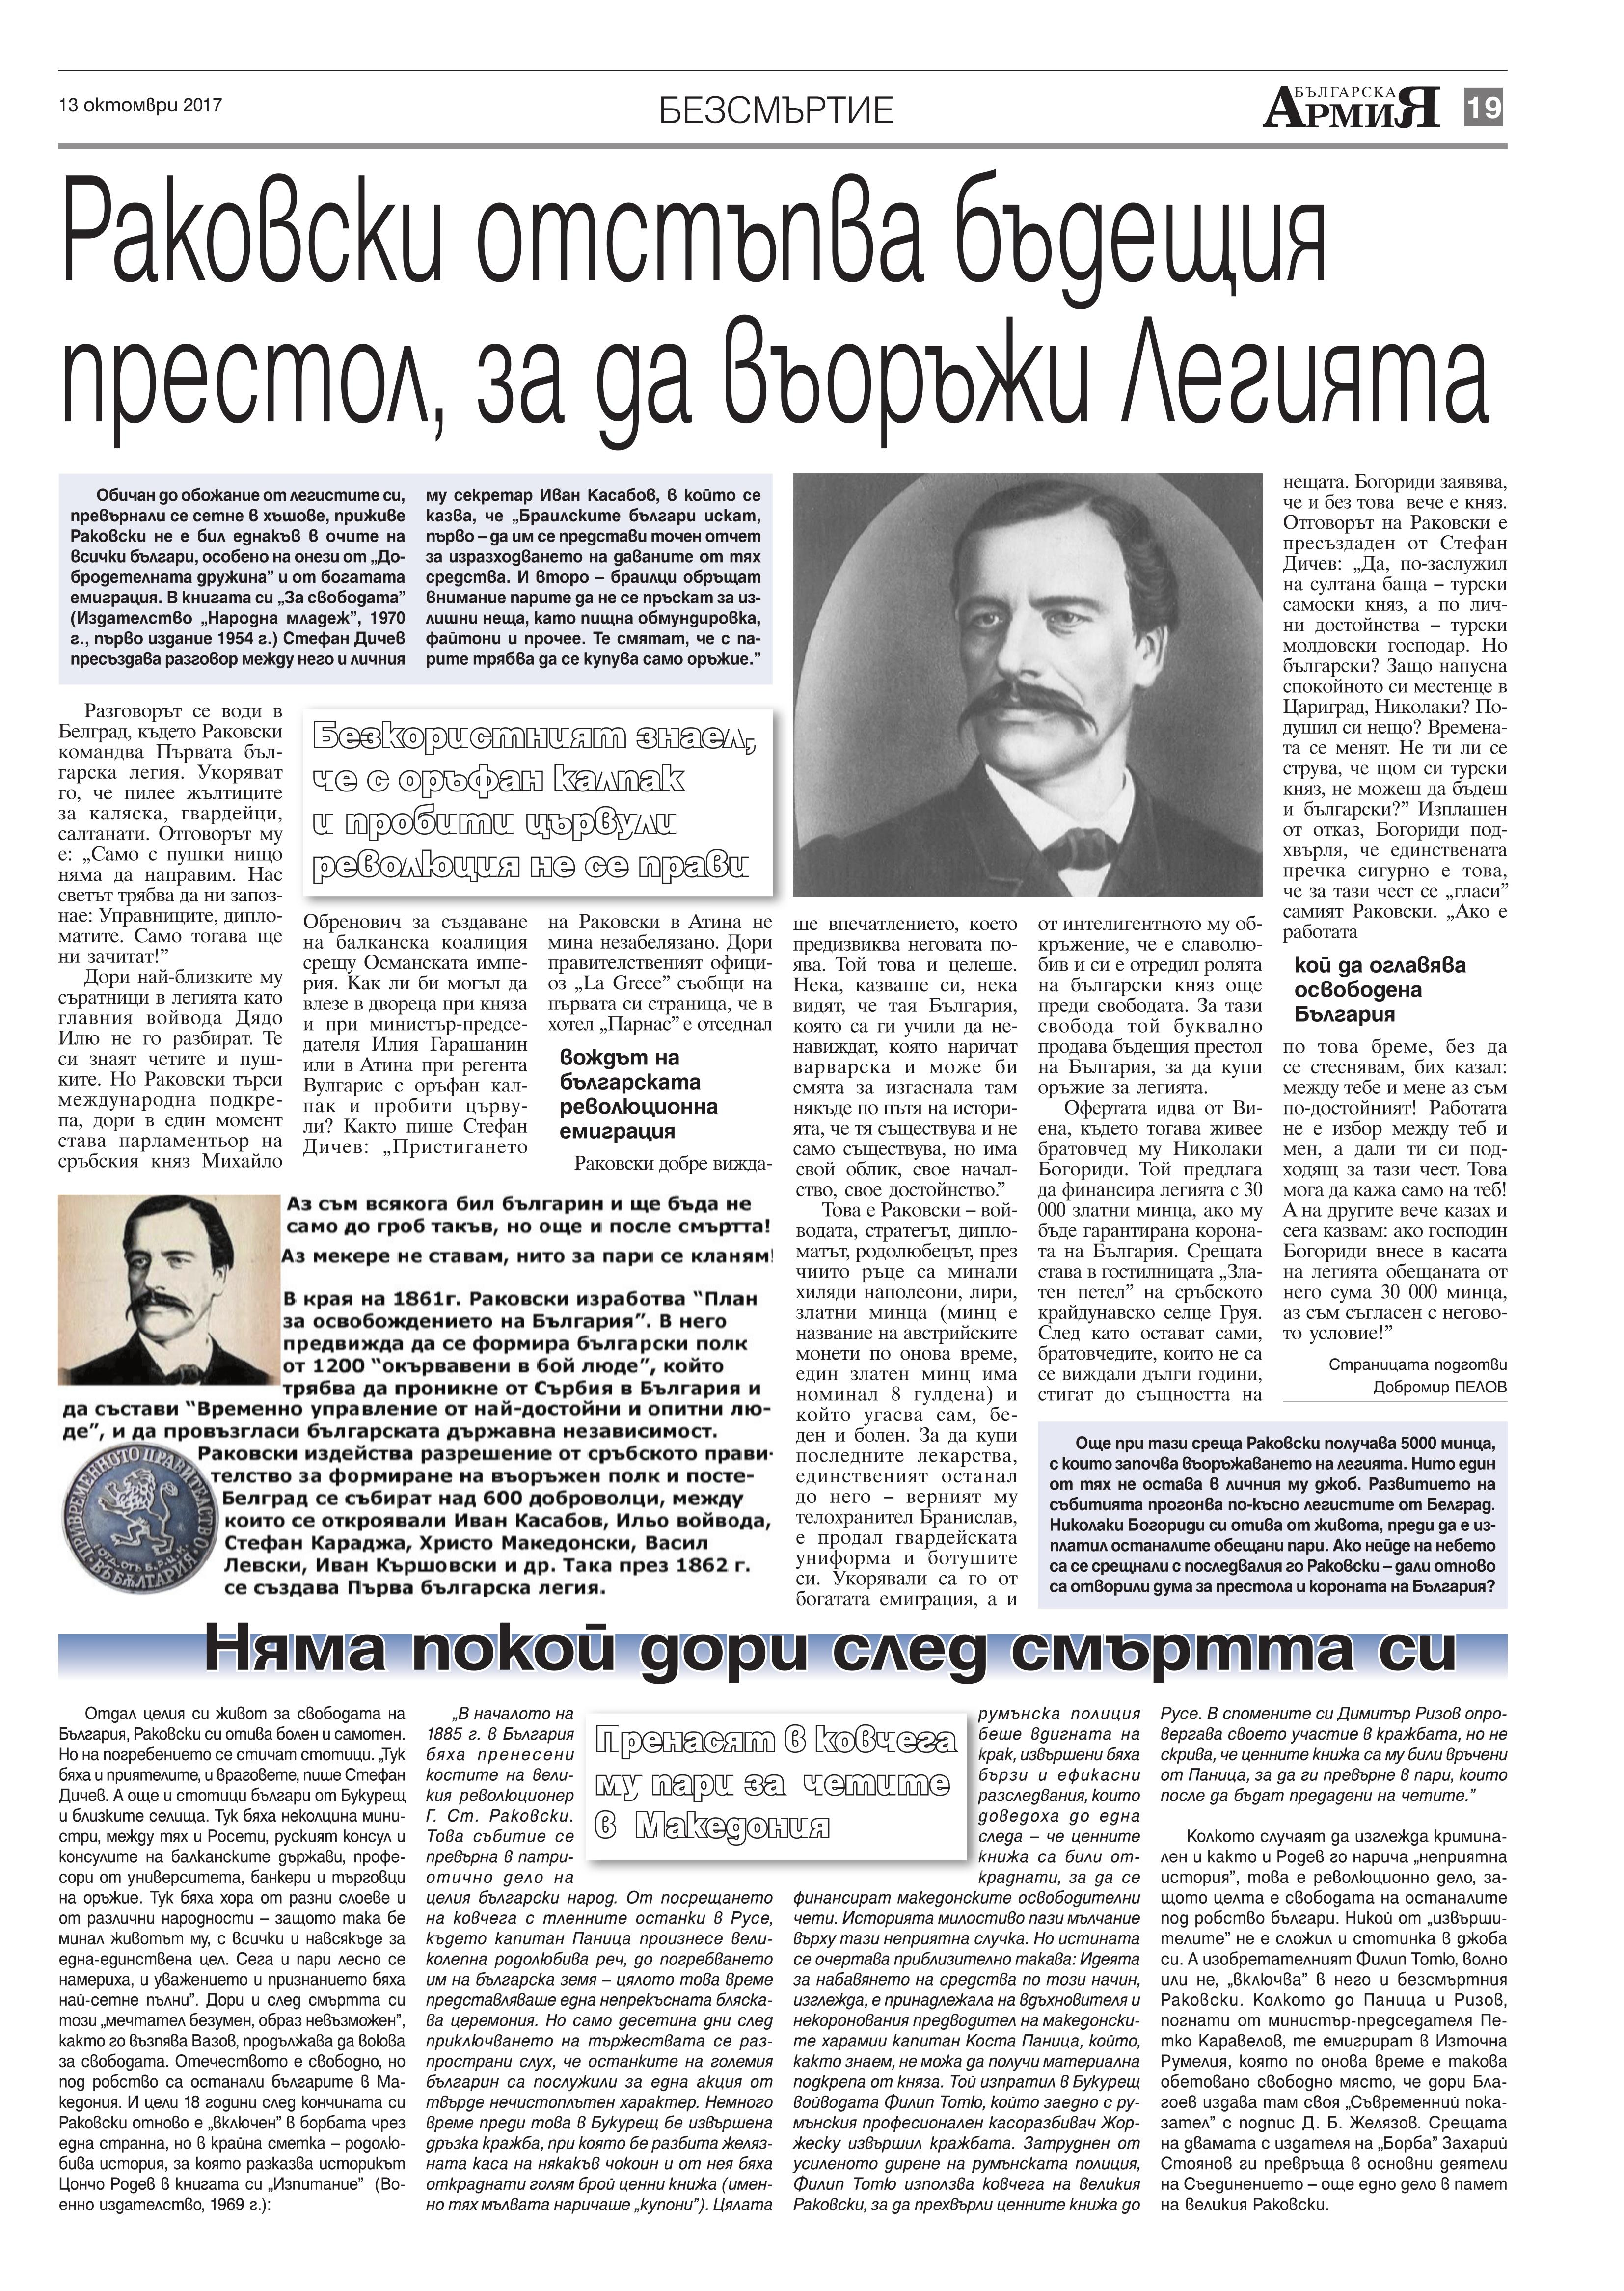 http://armymedia.bg/wp-content/uploads/2015/06/19.page1_-34.jpg